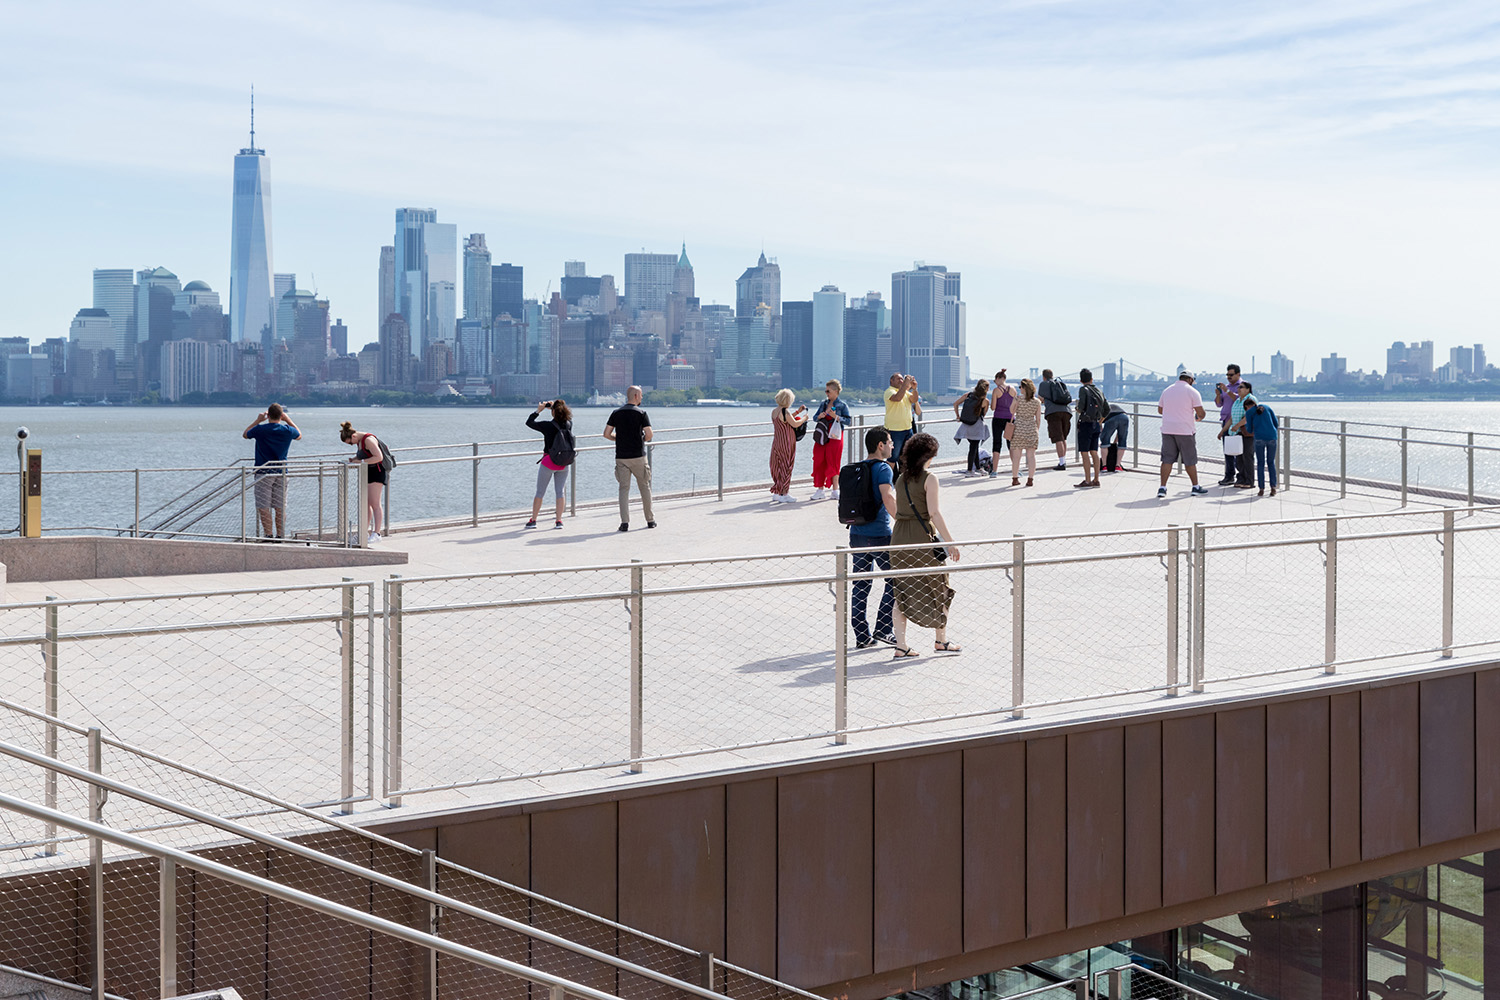 Unobstructed views of the Manhattan skyline and New York Harbor from the granite roof terrace. Copyright Iwan Baan